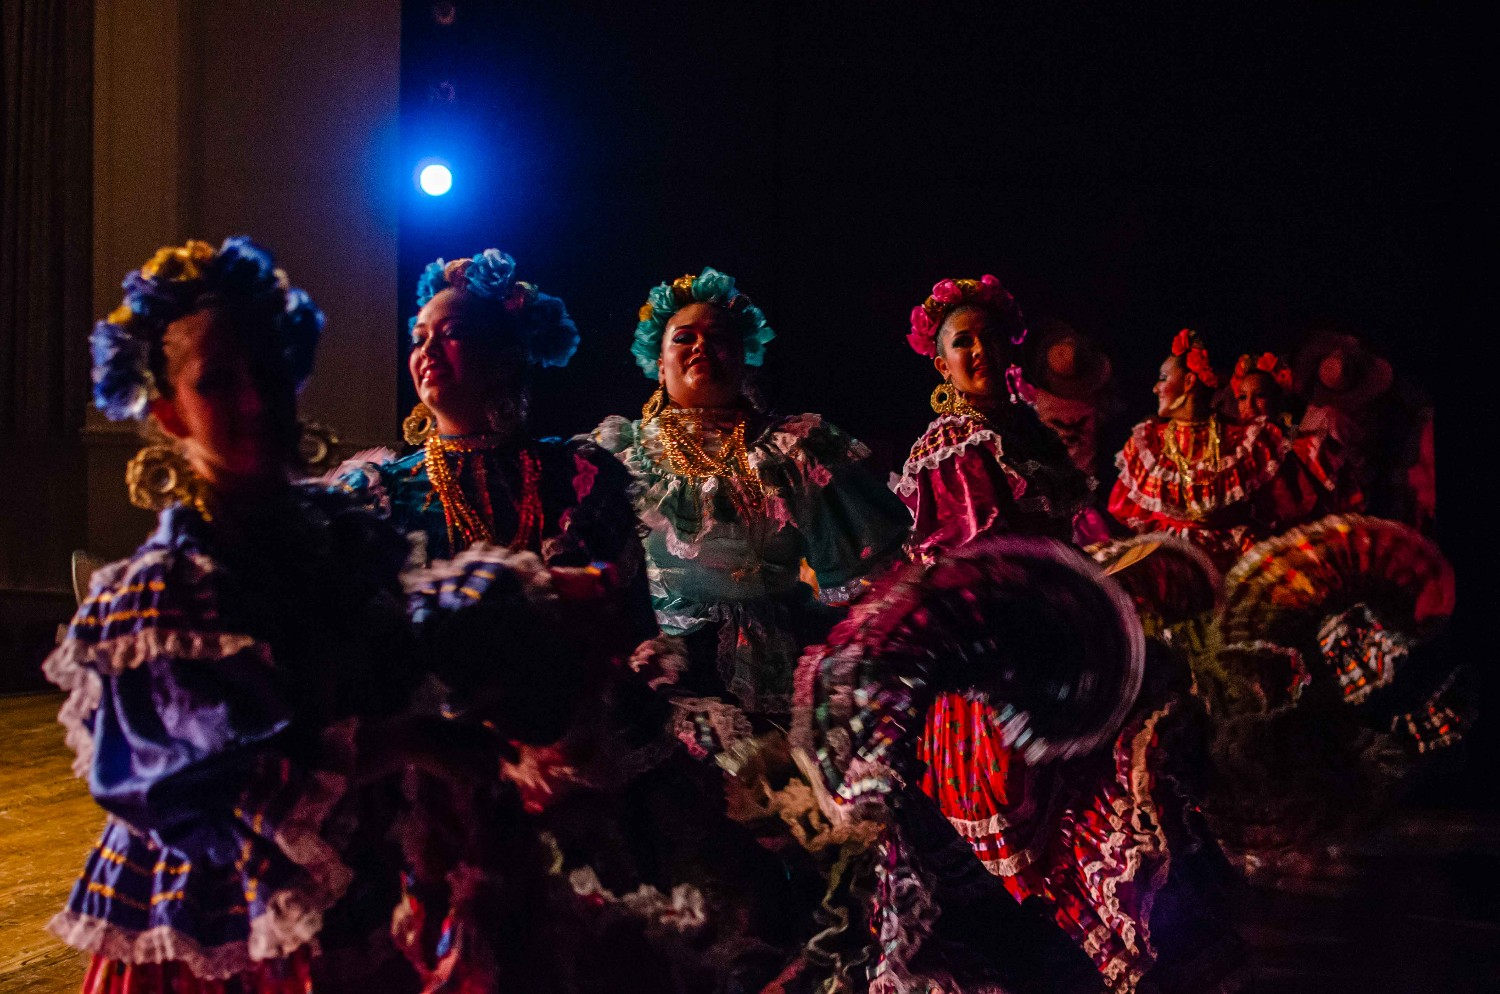 Images of Folkmoot 2018 - Intrepid Media